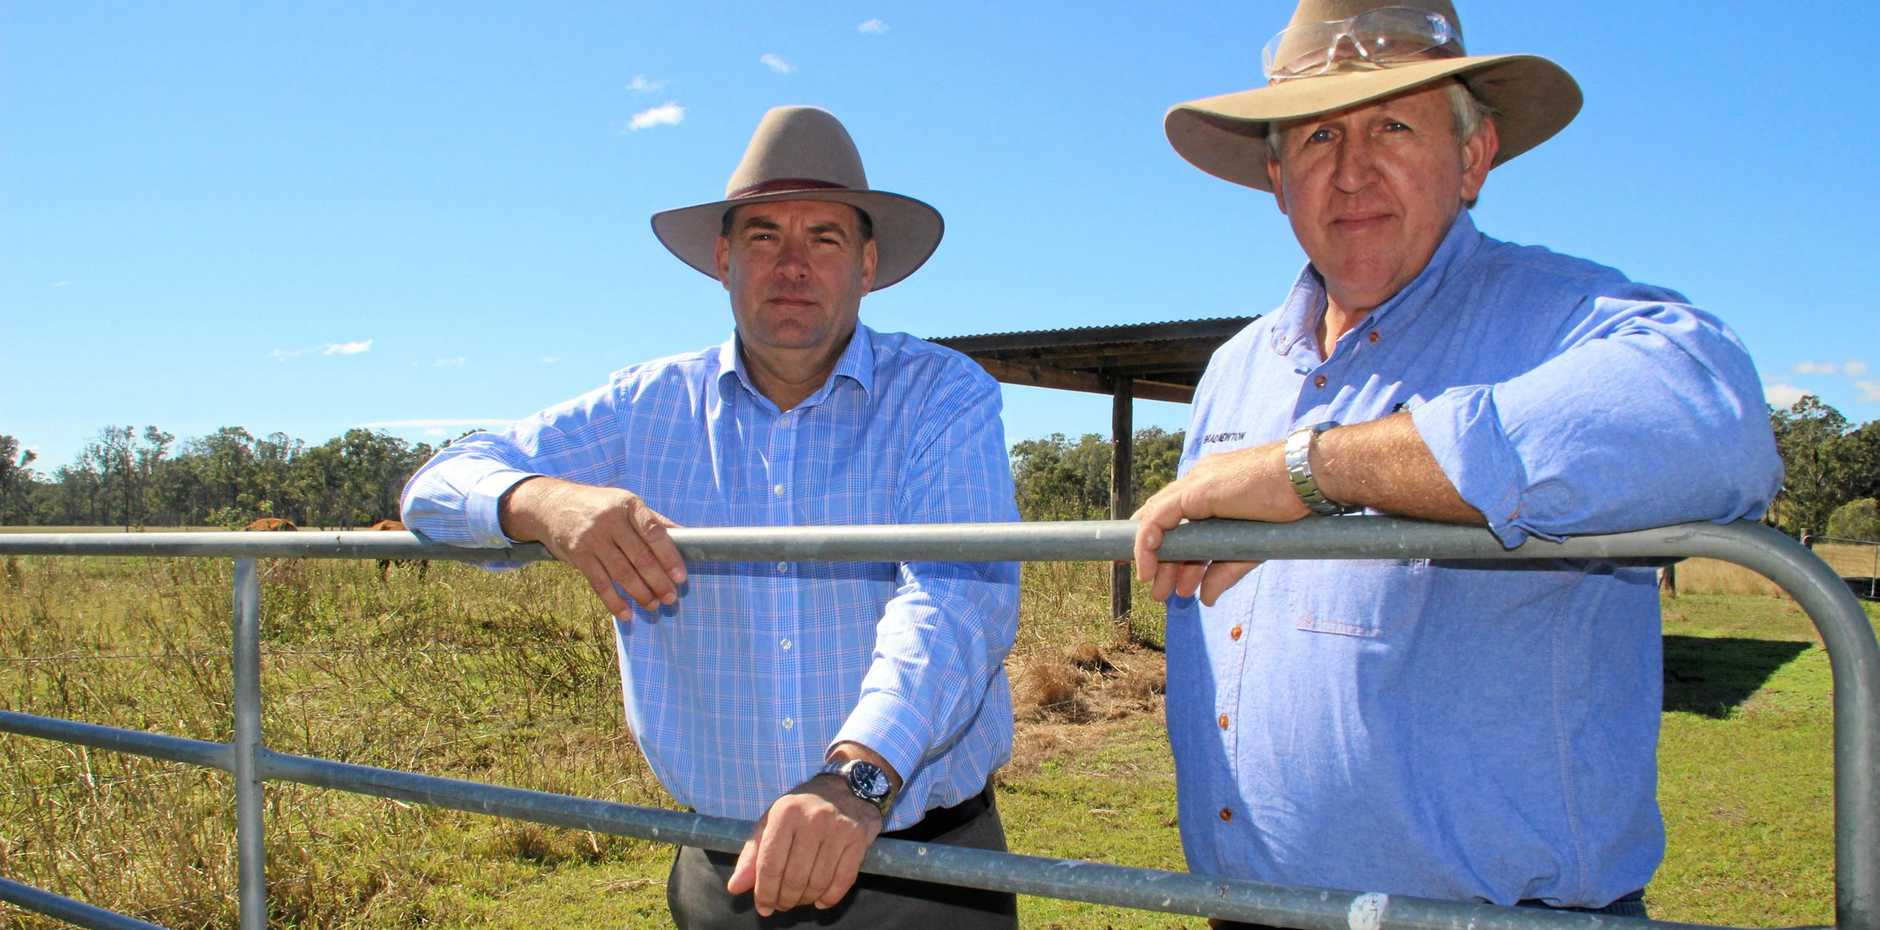 FEARFUL: Stephen Bennett and farmer Brad Newton have expressed fears about Labor's plans for the agriculture sector.